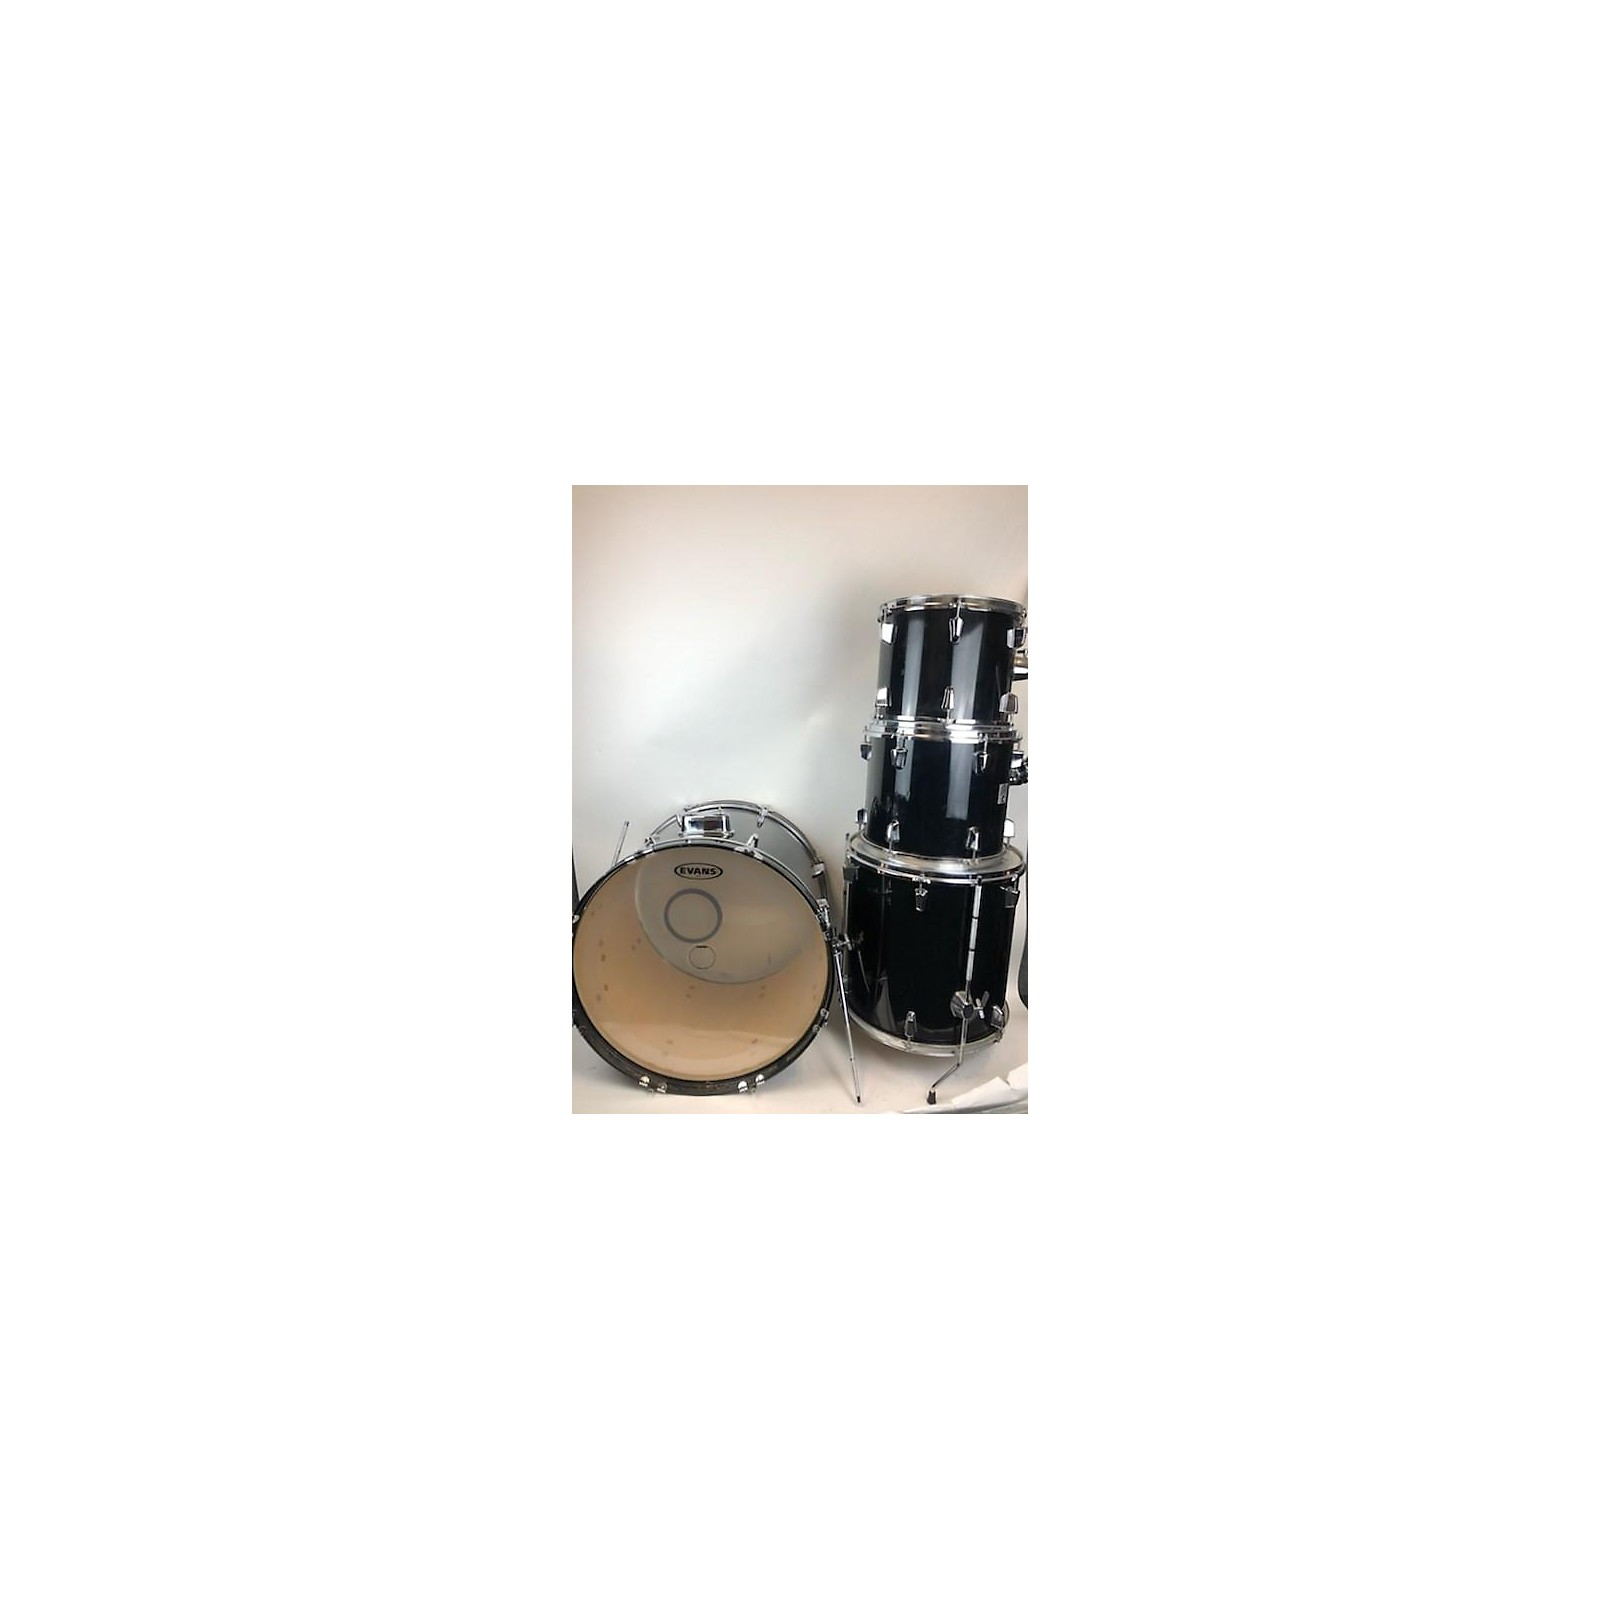 In Store Used Used Percussion Plus 4 piece Drums Black Drum Kit